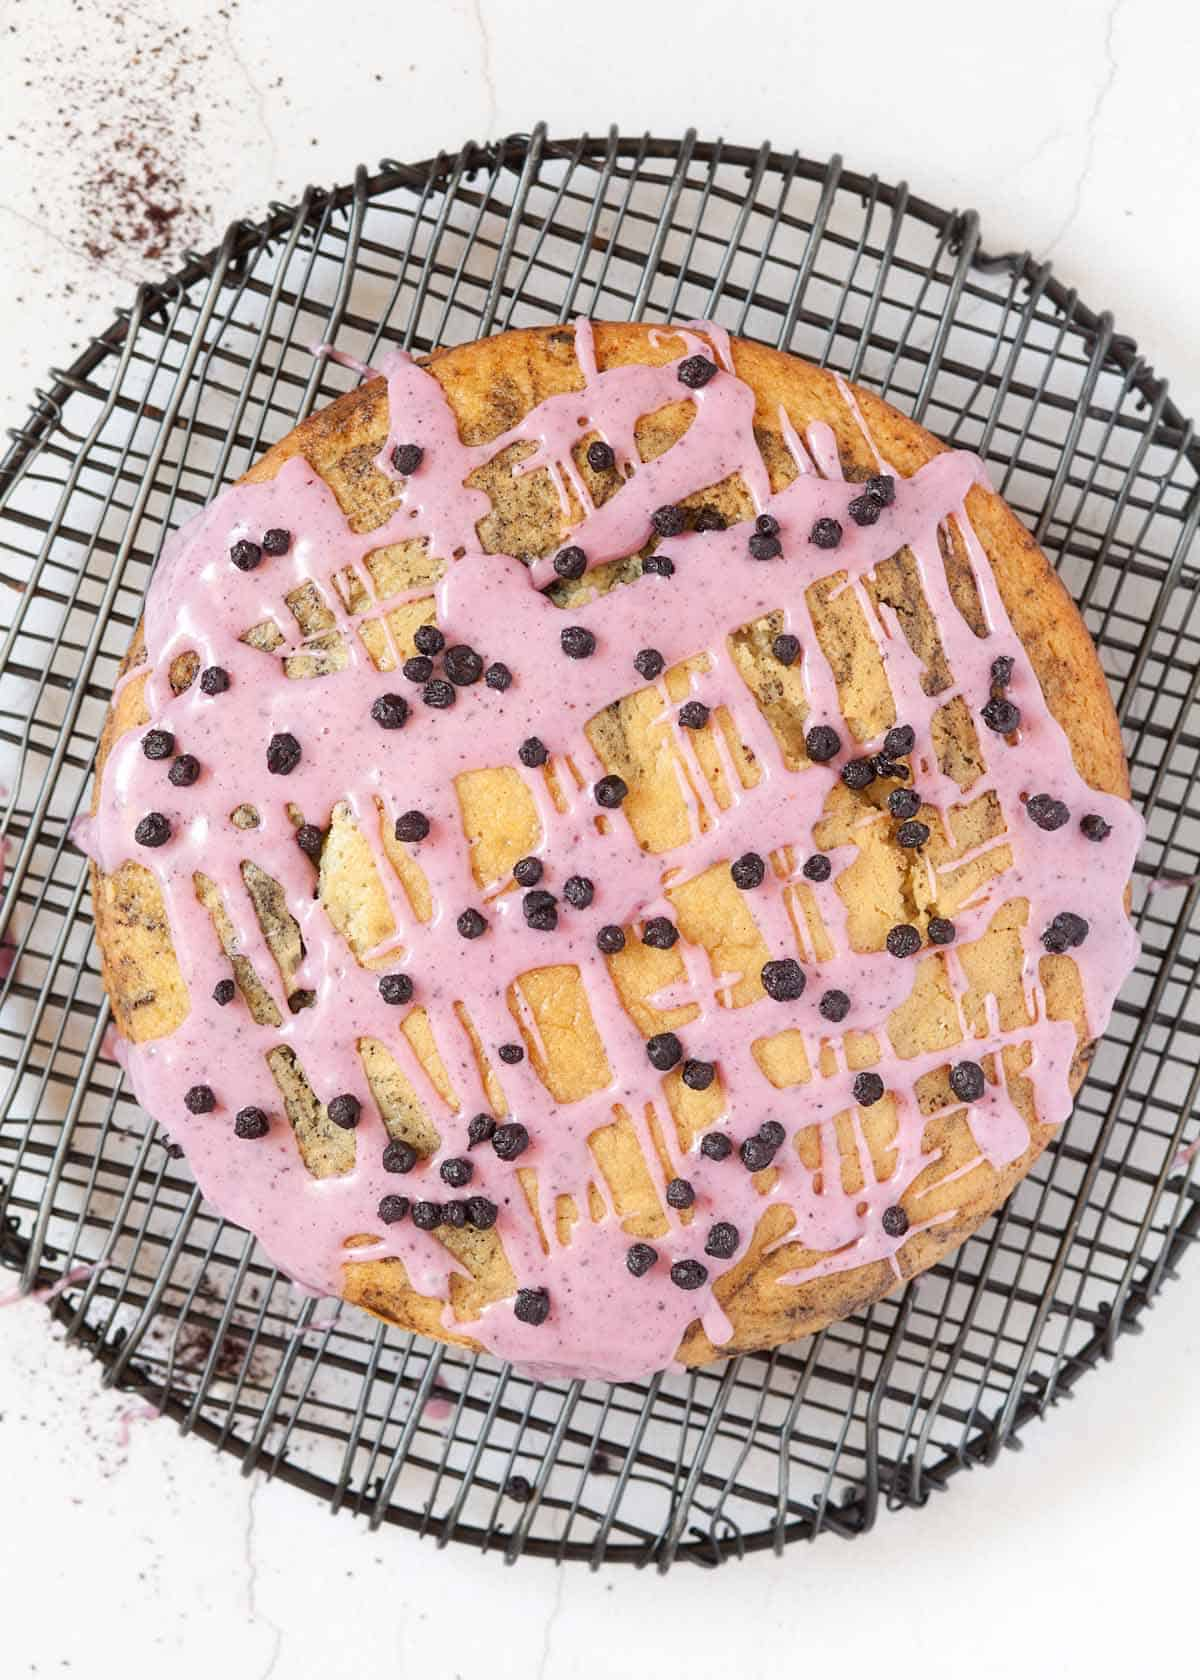 Vegan blueberry cake topped with bilberry icing with blueberries on top